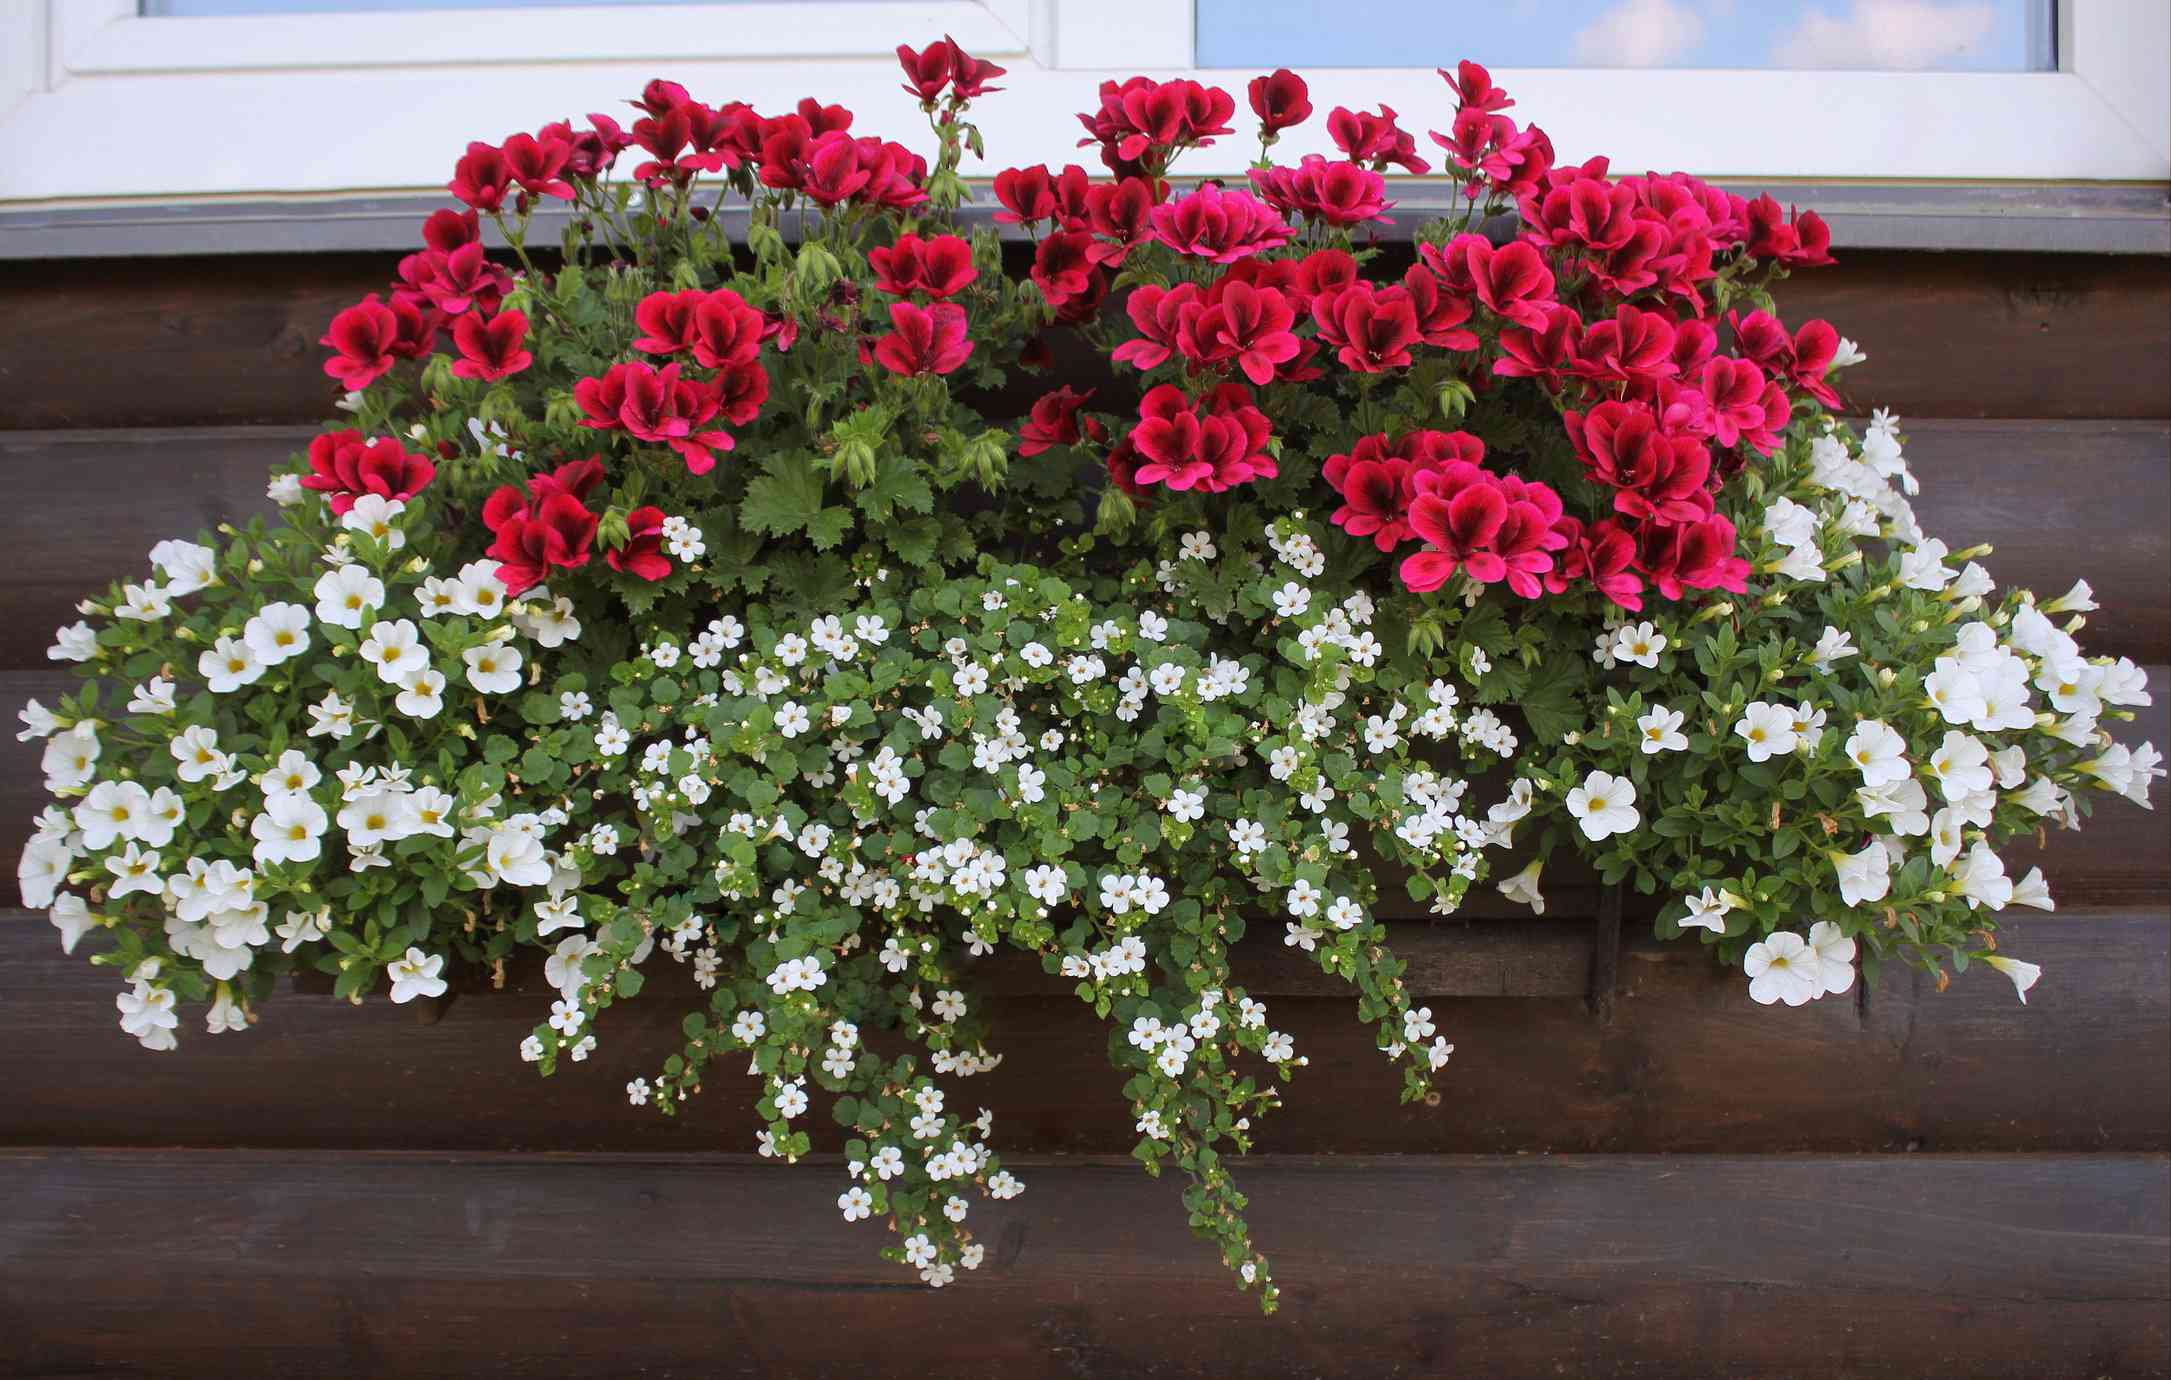 Water Hyssop in a window box with other flowers